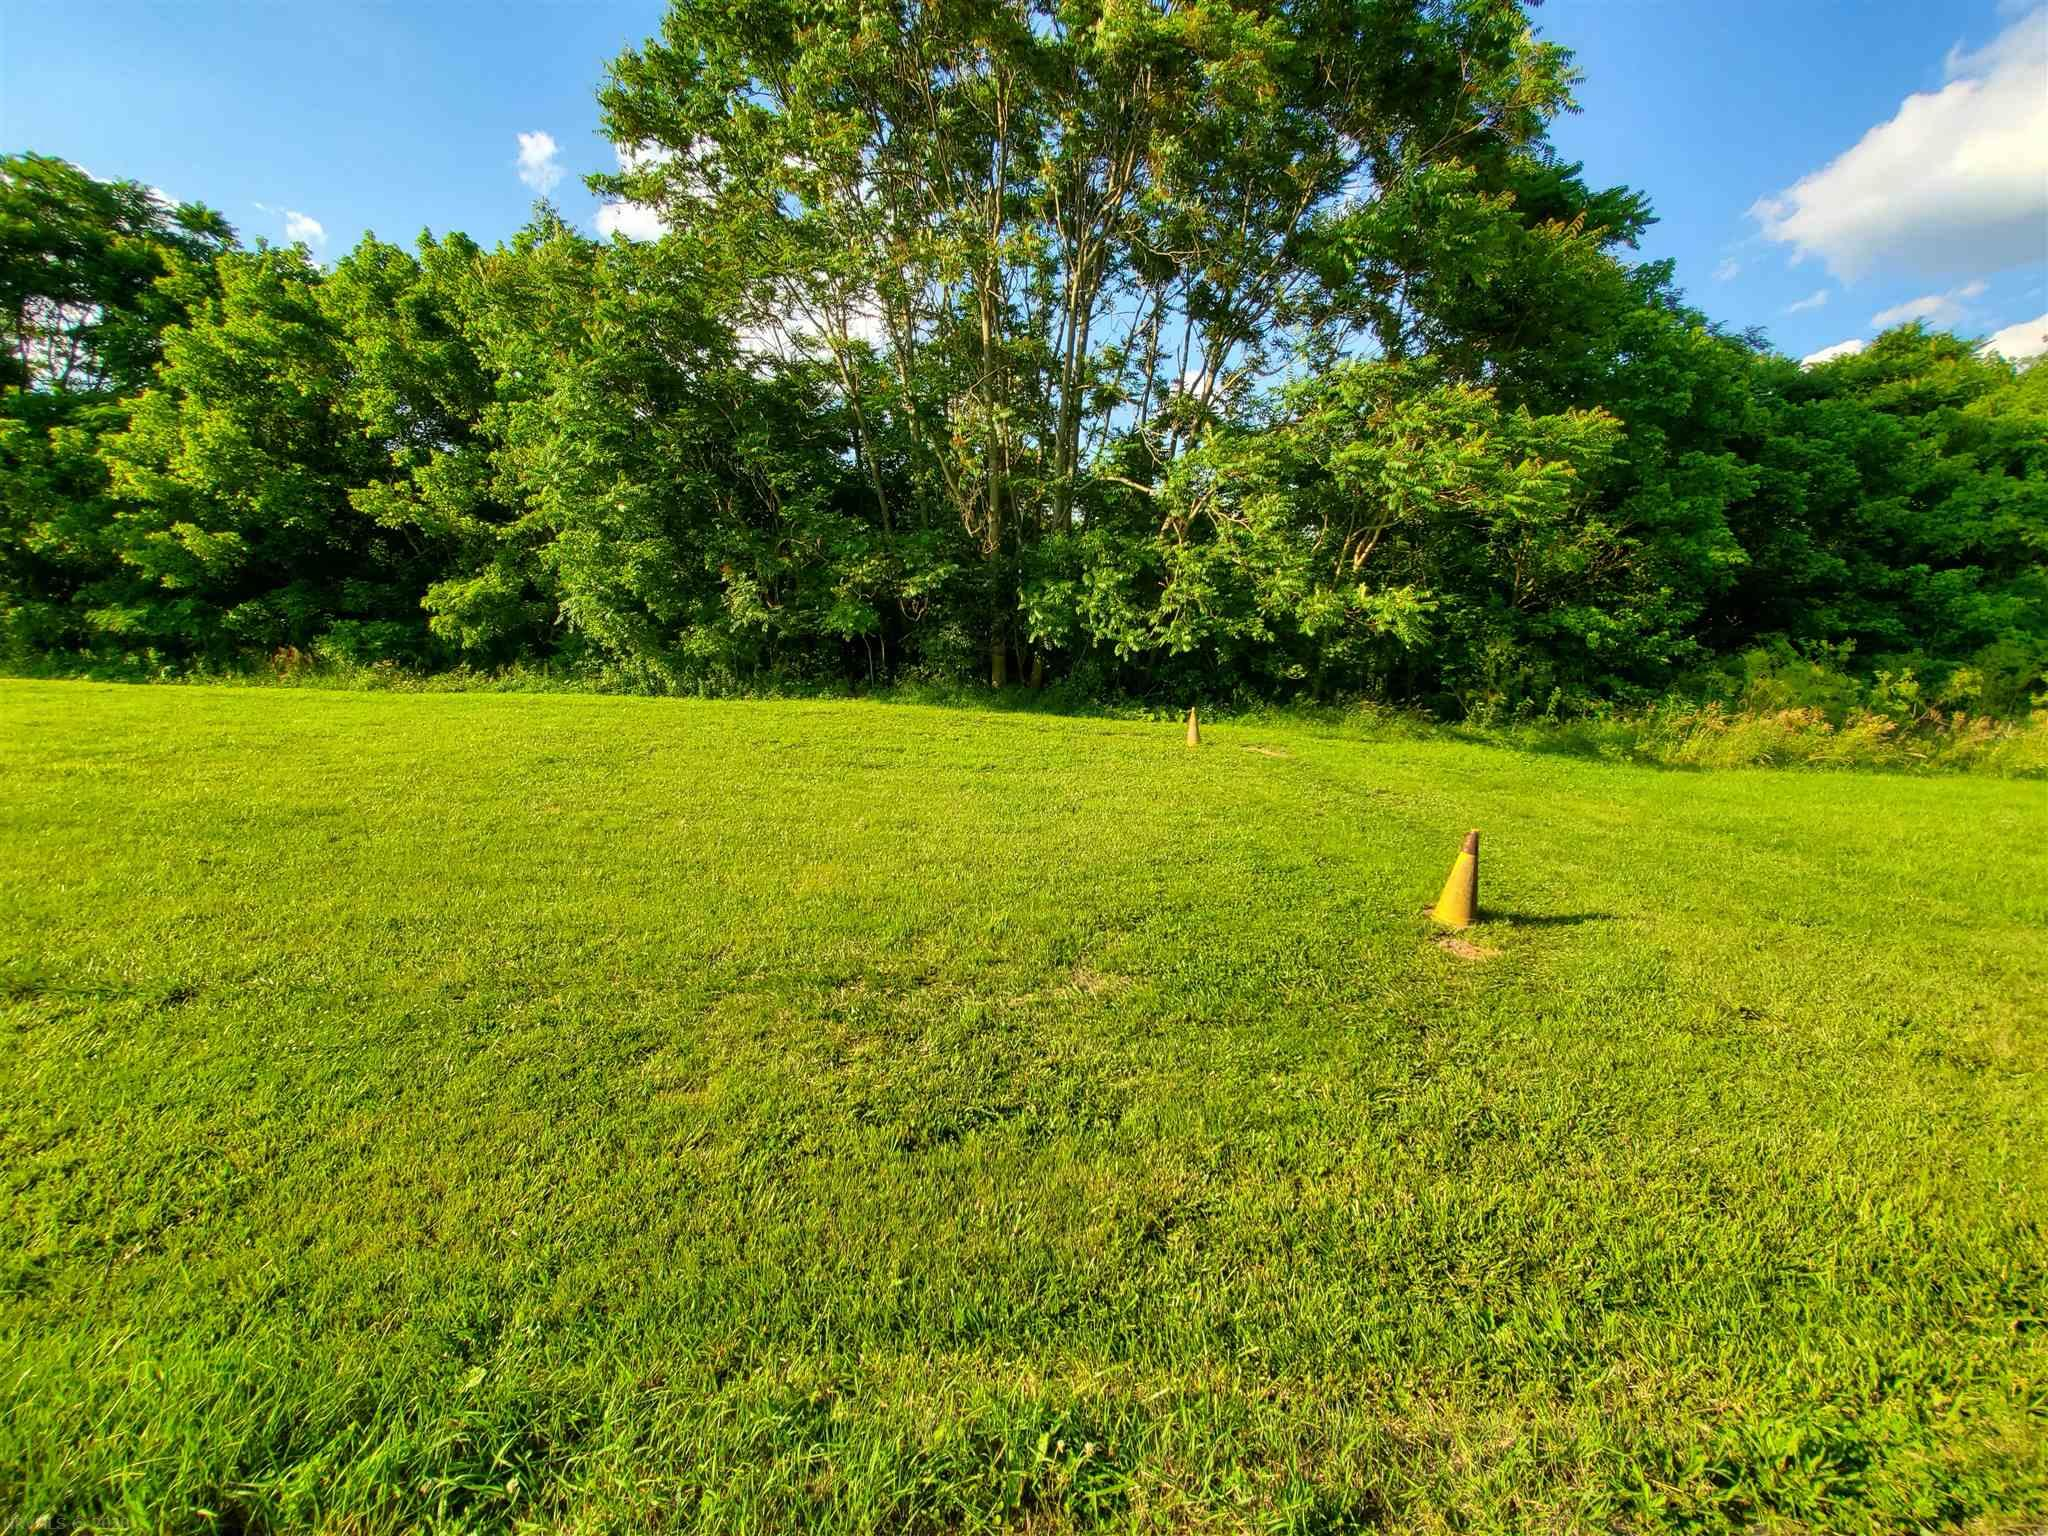 Commercial lot conveniently located in Radford. Being minutes from Radford University and Downtown Radford, this lot has great potential! Adjoining 1.0 acre lot also listed for $99,000.